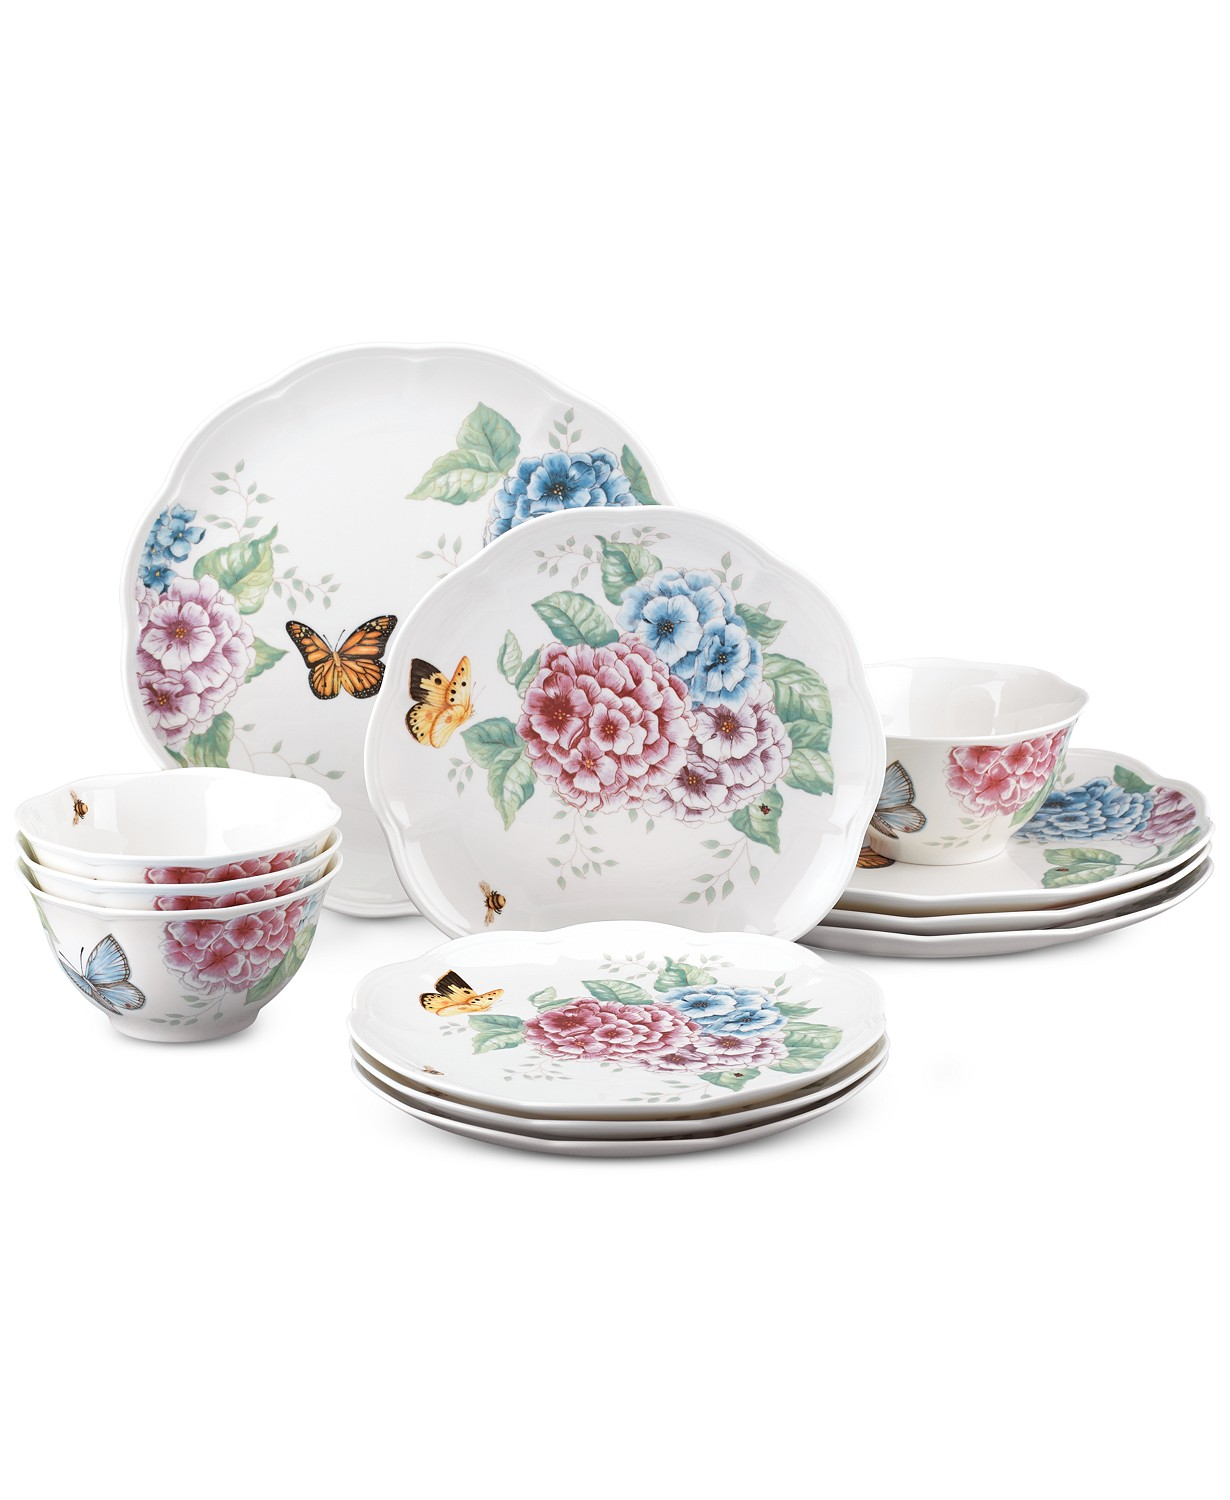 Expanded Dinnerware Sets from Villeroy & Boch, Noritake & More